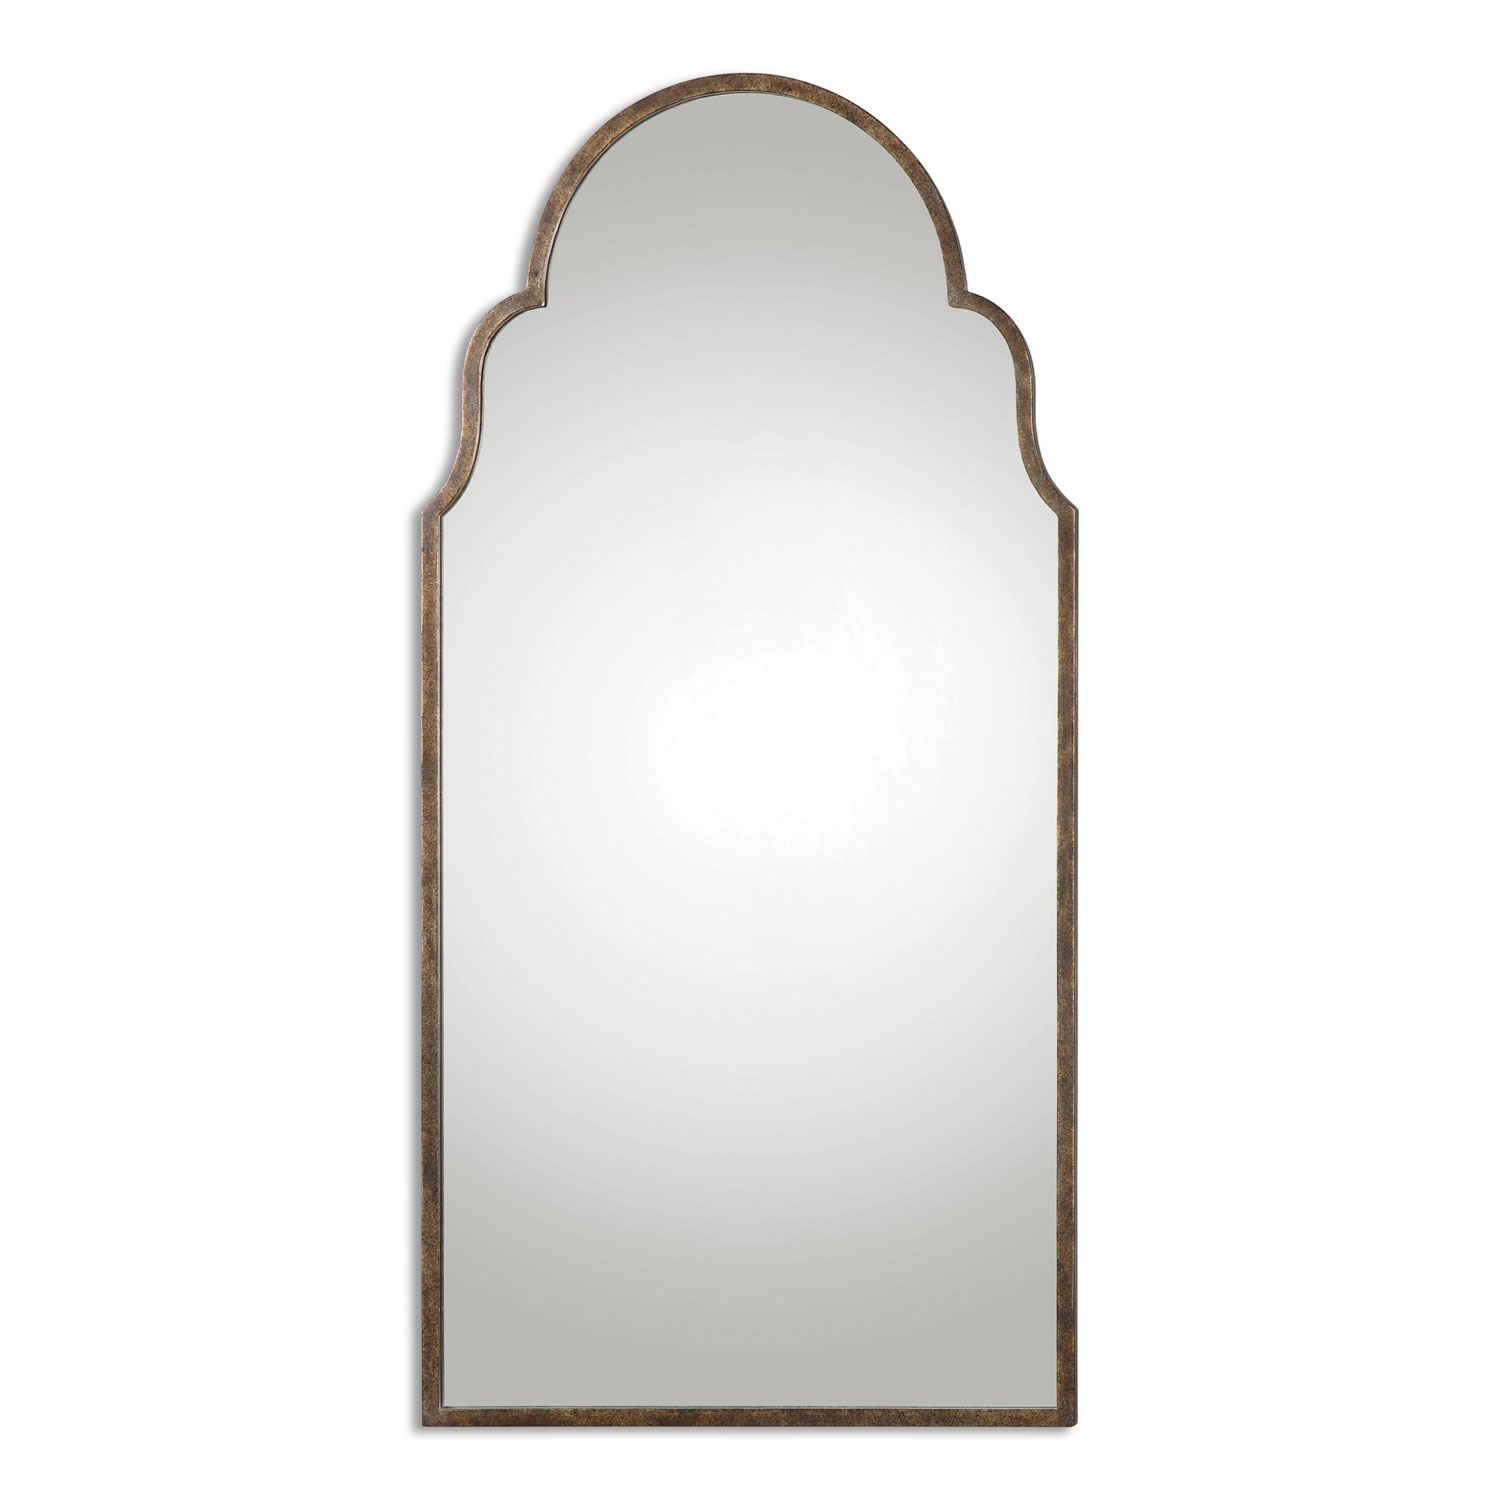 Arch Top Mirrors Bathroom